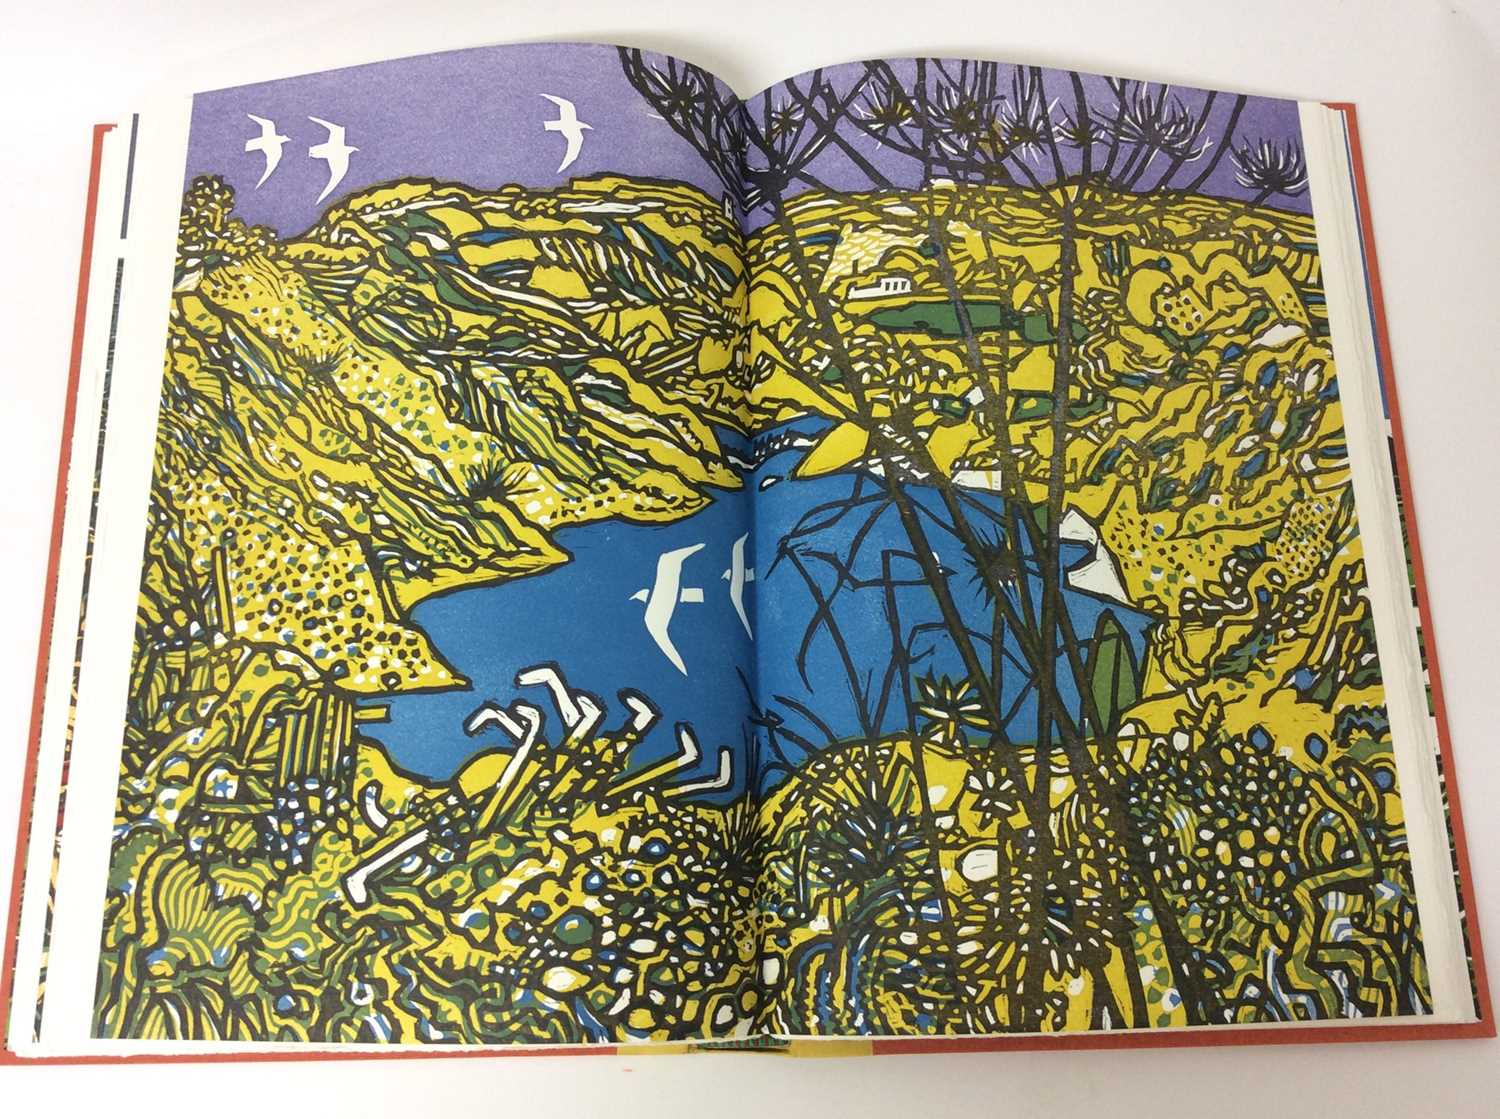 Pennant and His Welsh Landscape with woodcuts by Rigby Graham by Gregynog Press 2006, limited editio - Image 8 of 9